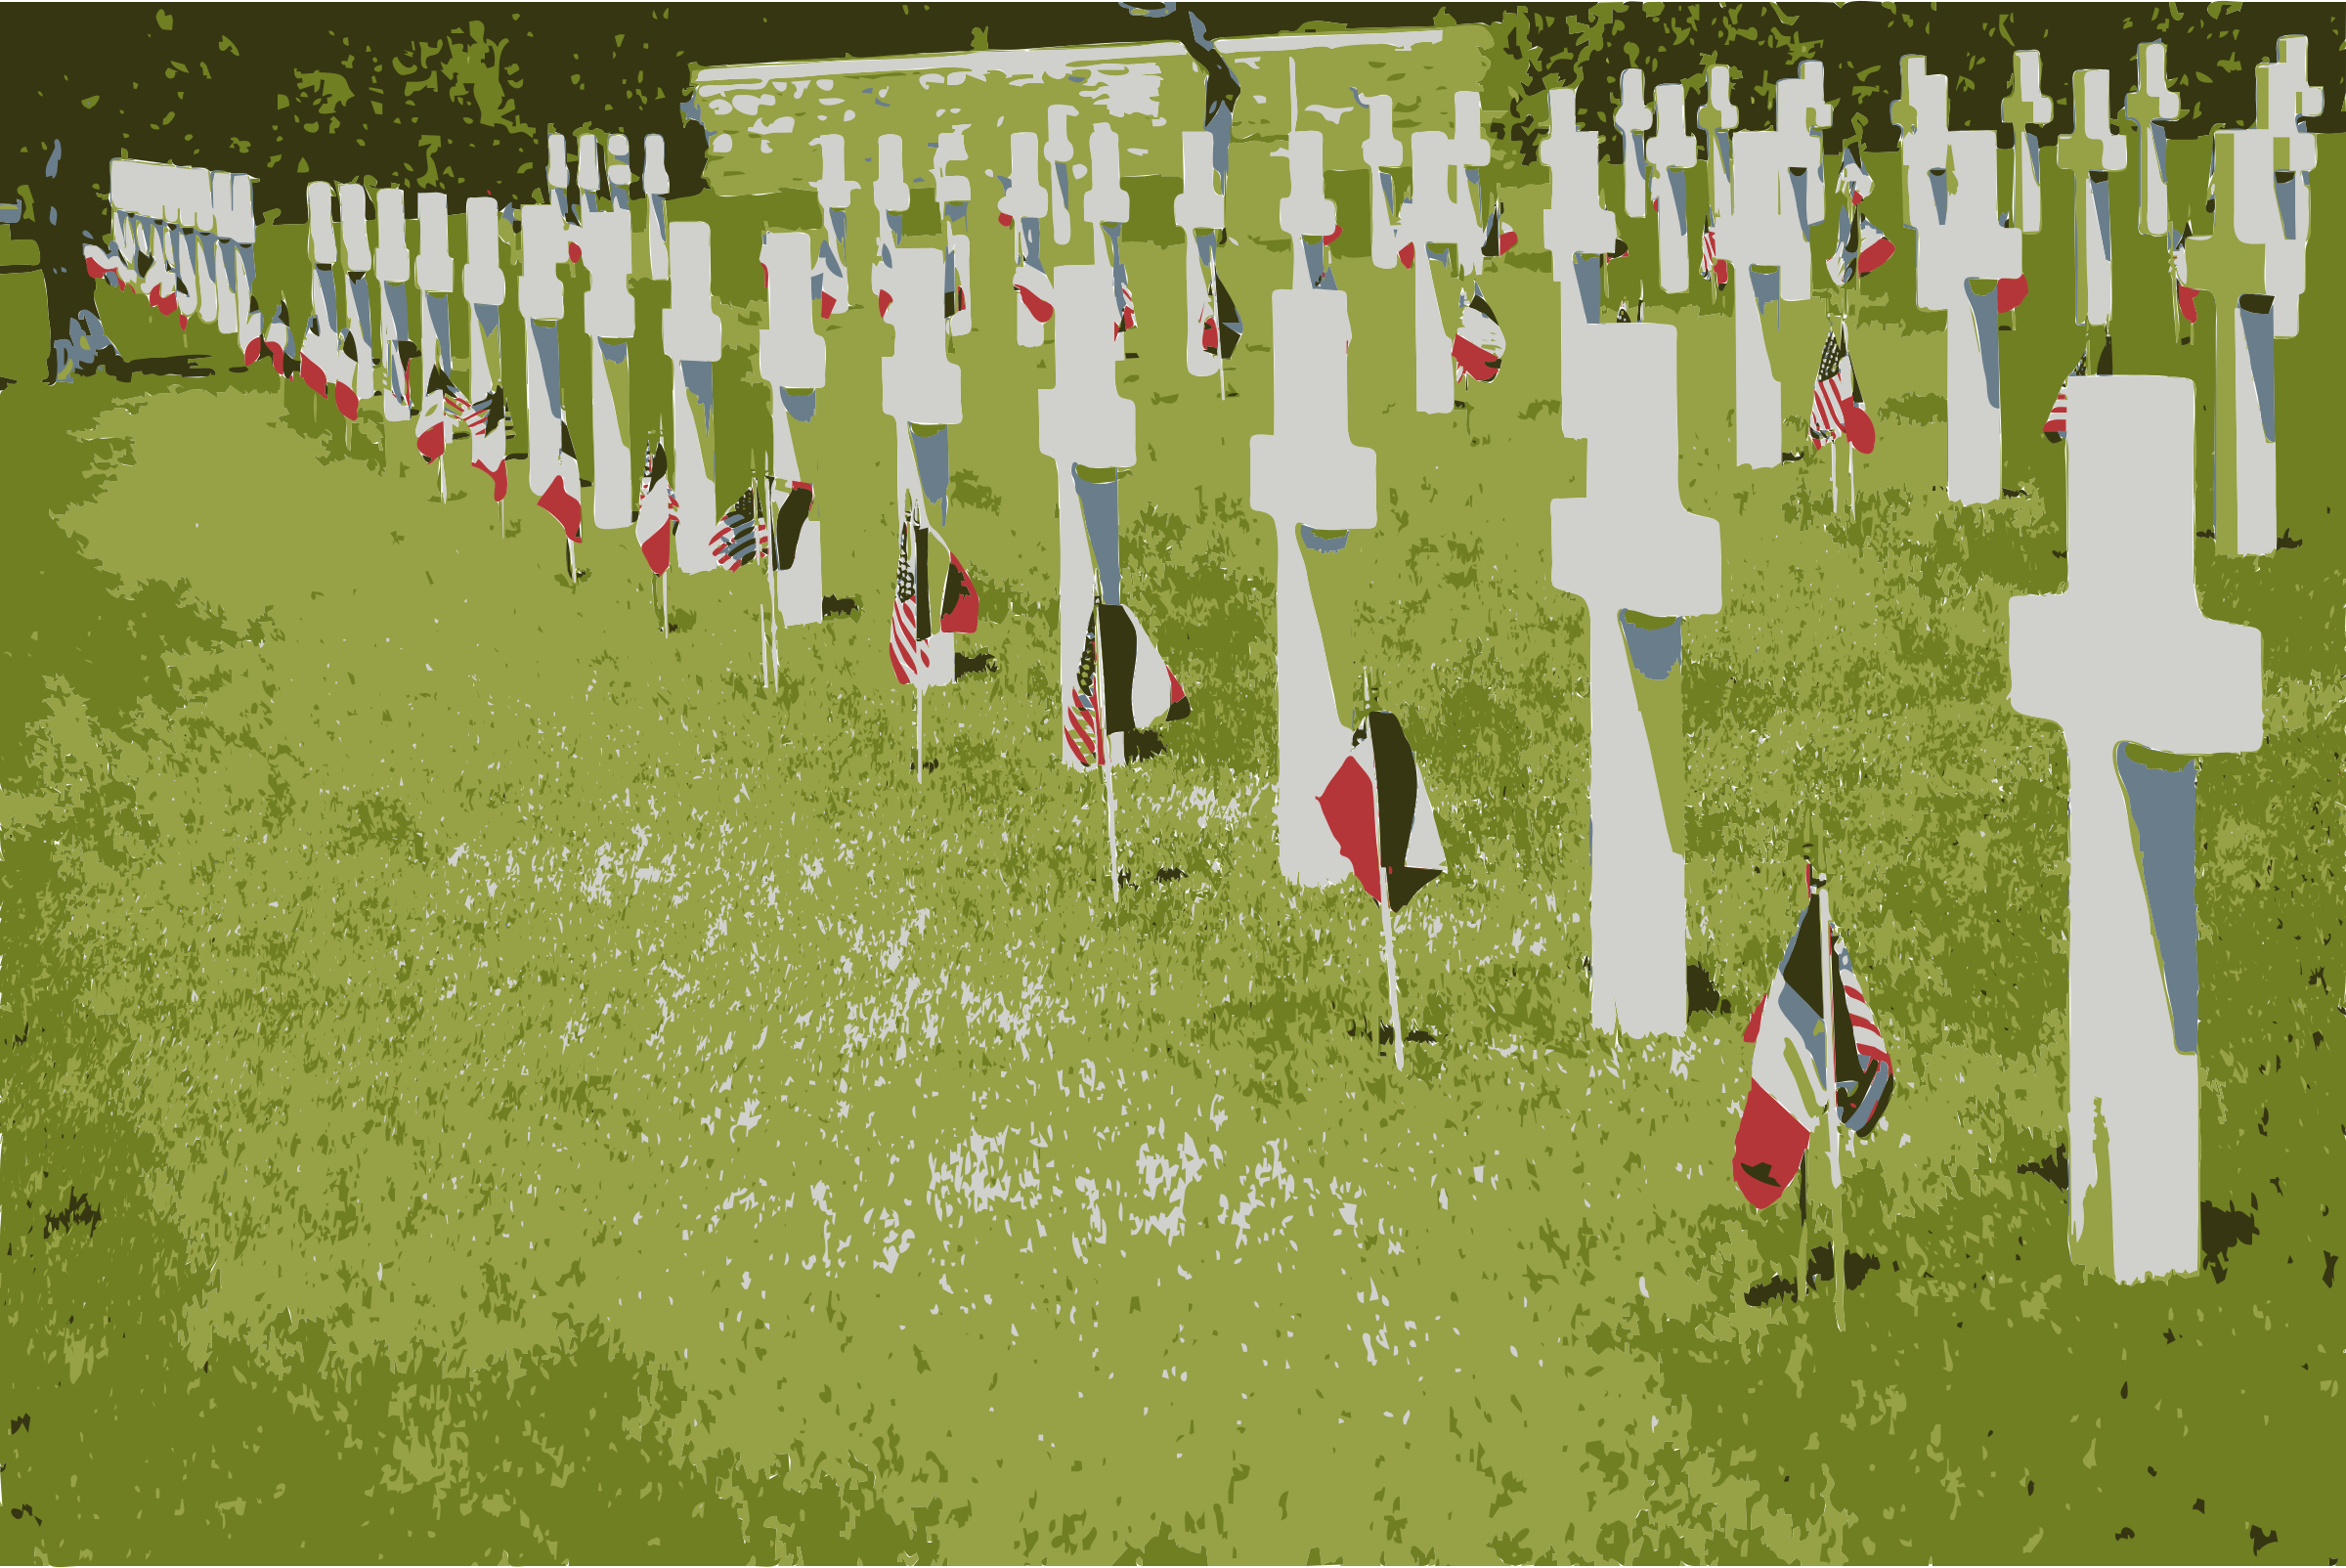 Rhone American Cemetery and Memorial Colorized by wanglizhong